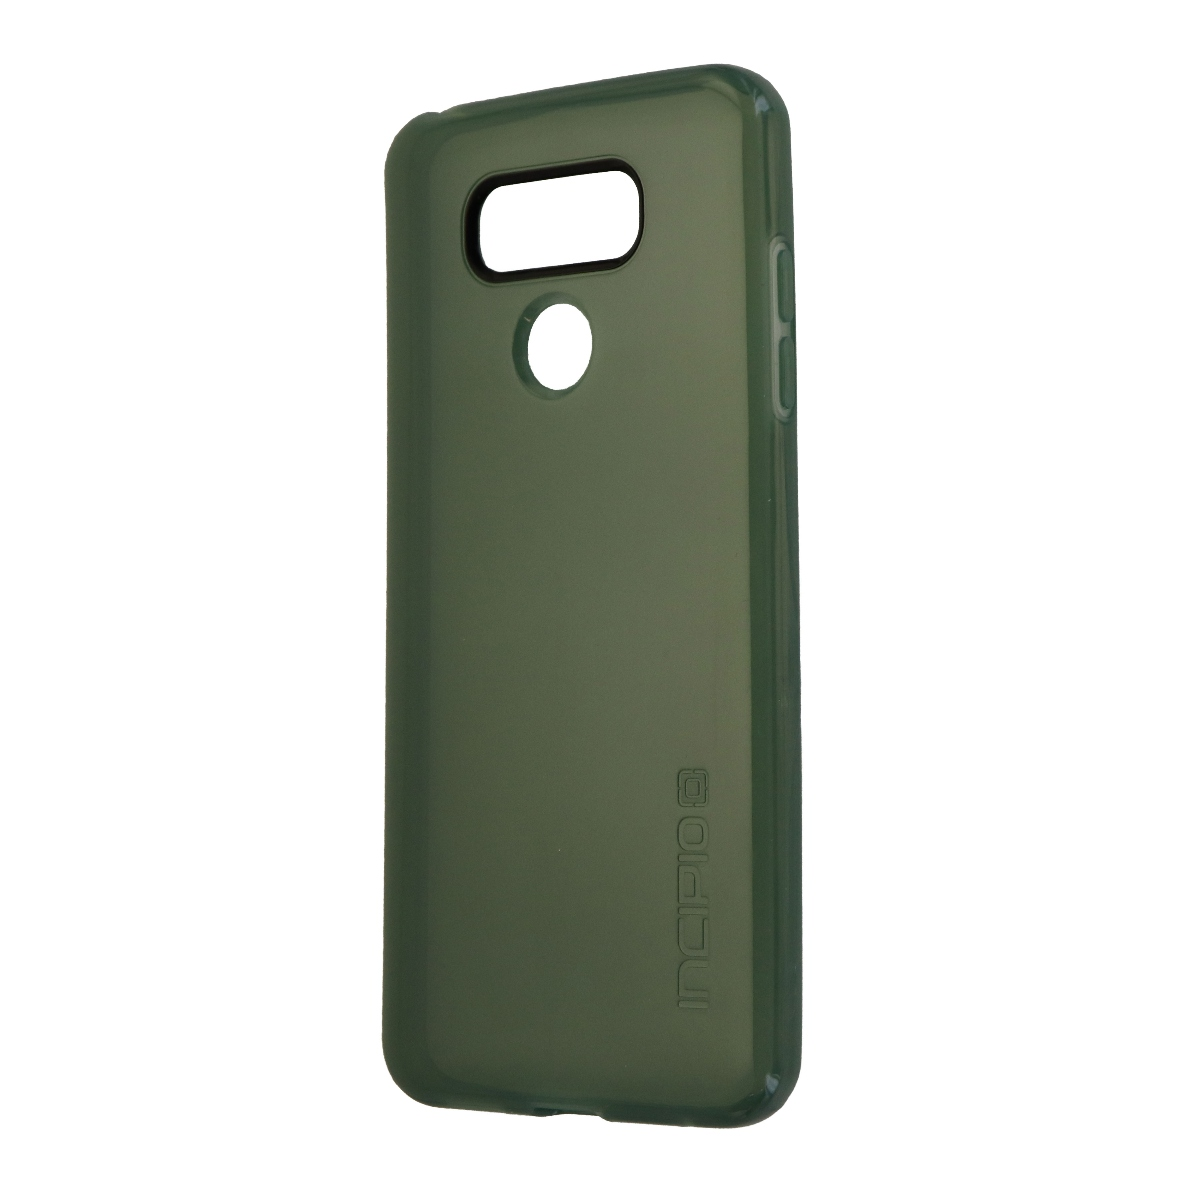 Incipio NGP Pure Series Protective Case Cover for LG G6 - Forest Green